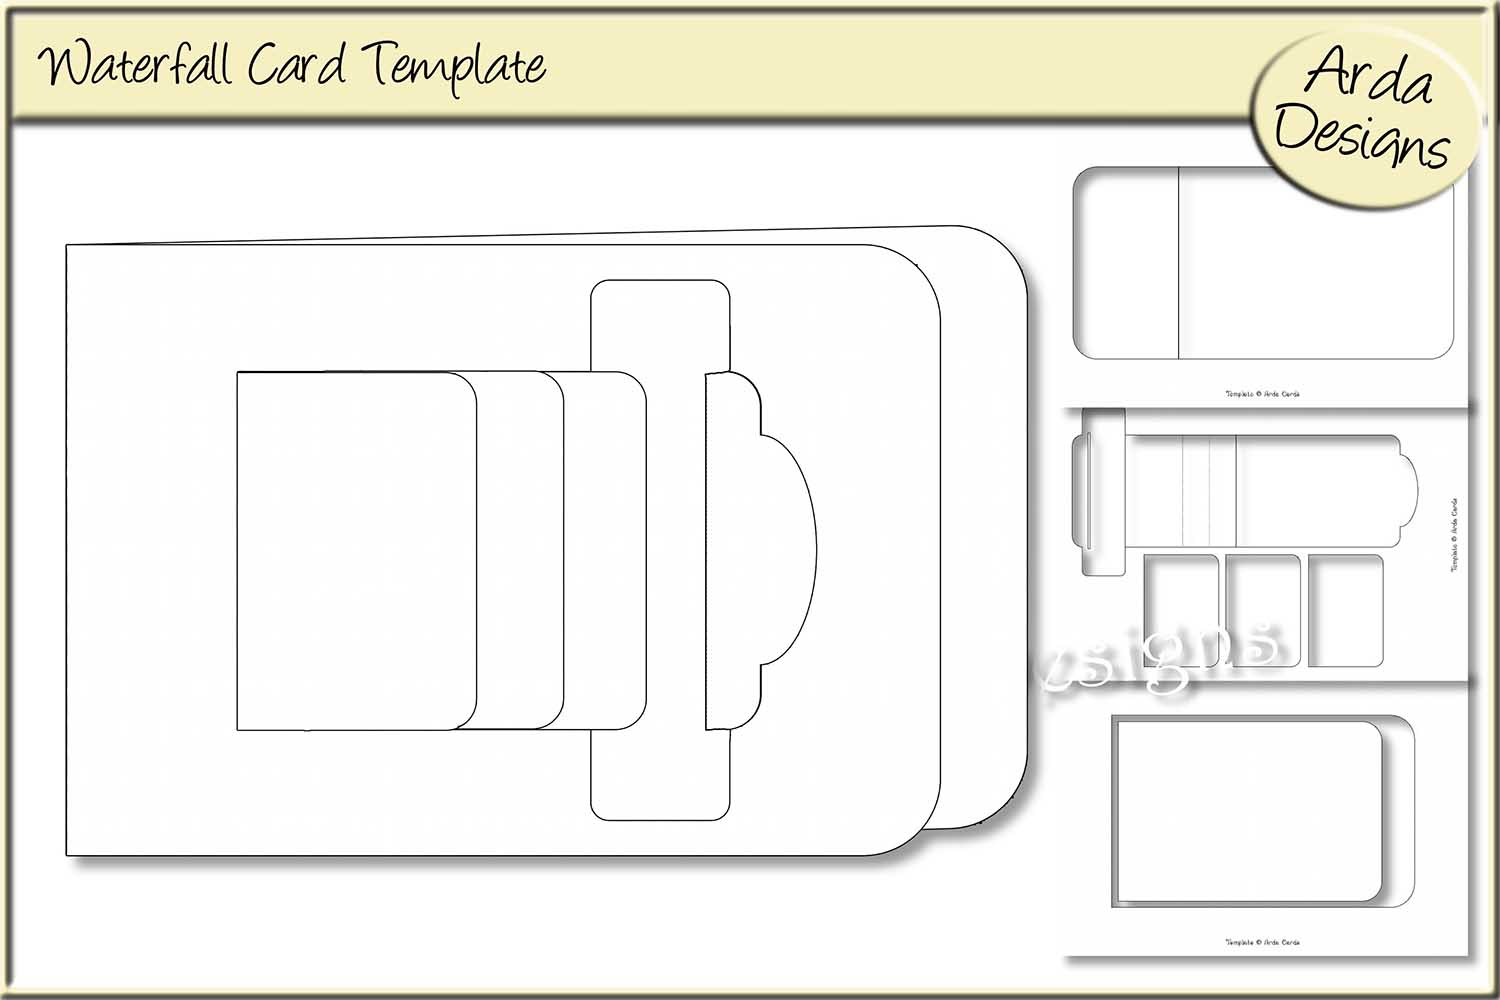 waterfall card template and instructions